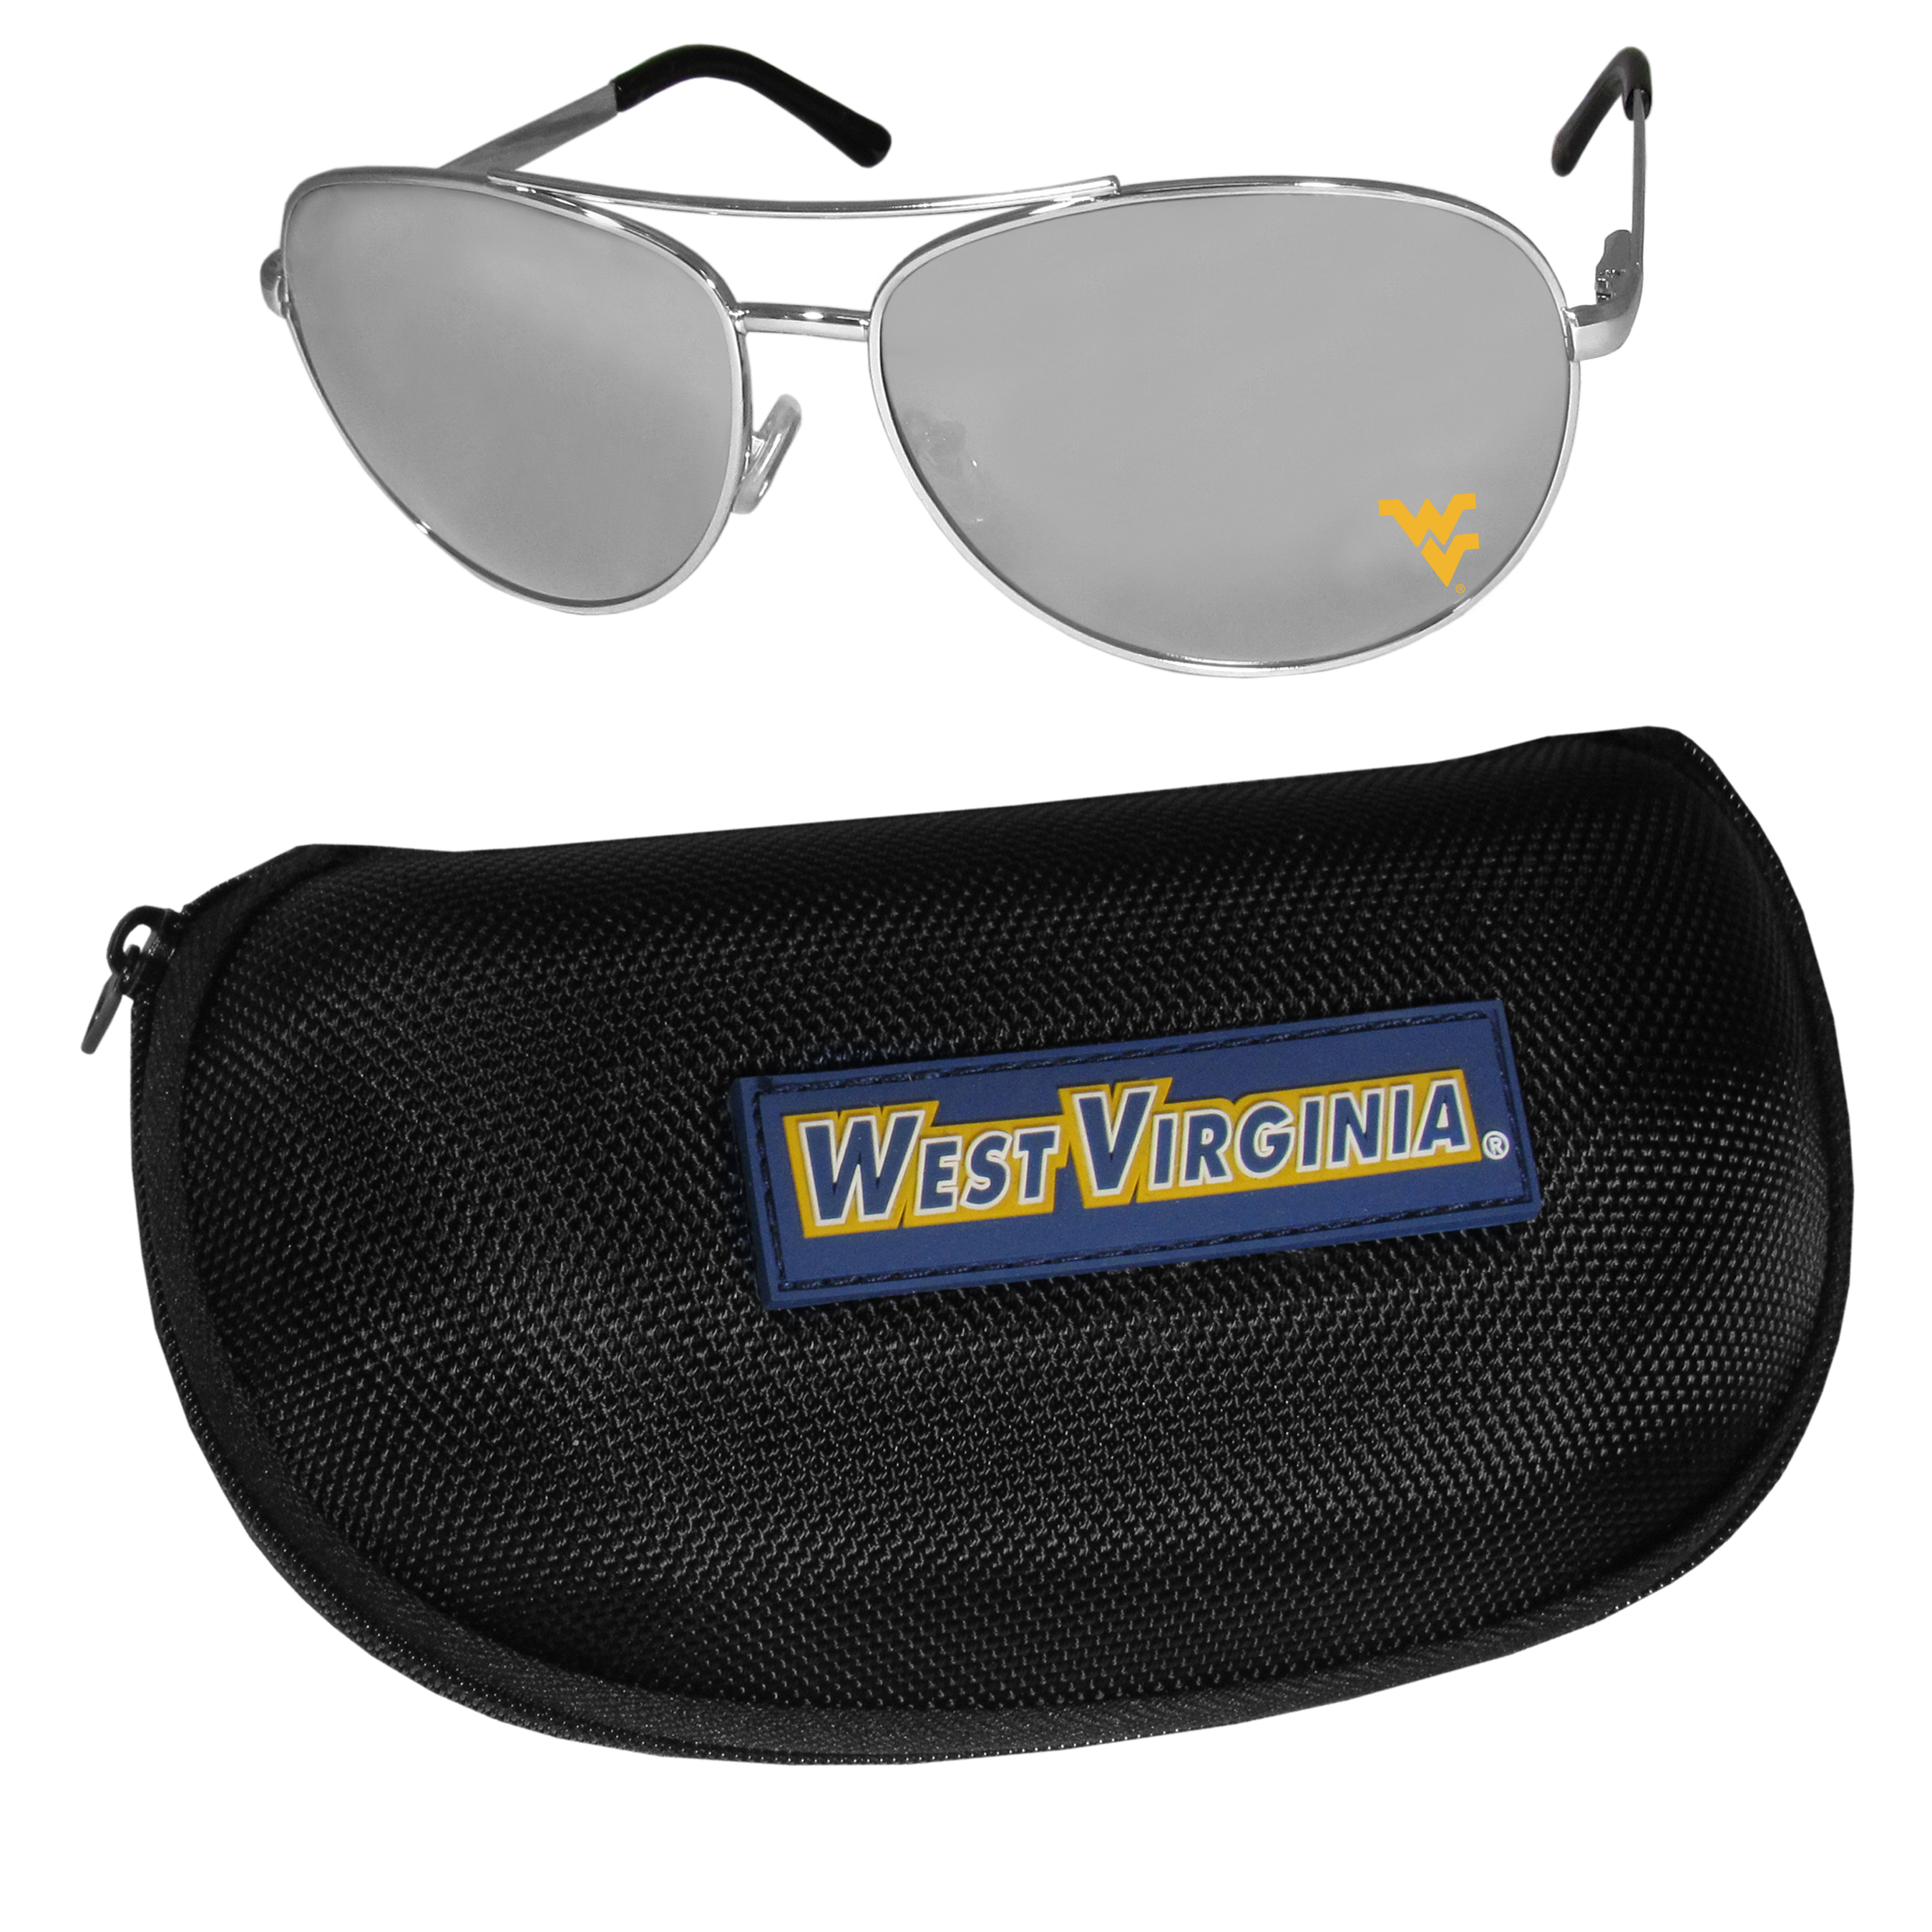 W. Virginia Mountaineers Aviator Sunglasses and Zippered Carrying Case - Aviator sunglasses are truly an iconic retro fashion statement that never goes out-of-style. Our W. Virginia Mountaineers  aviator sunglasses pair this classic look with your love of the game. The iridium coated lenses reduce glare while driving, boating, golfing and their 100% UVA/UVB rating provides you with the maximum UV protection for all your outdoor activities. A millennial favorite, these affordable designer frames are the perfect eyewear accessory for a sports fan that is looking for high-quality at an affordable price. The durable, flex hinged frames are tough enough for hiking and camping or if you prefer sun bathing by the pool or on the beach these shades will really stand the test of time. The sunglasses come with a hard shell zippered case which has a large team logo on the lid that will make even the most die-hard fan proud!